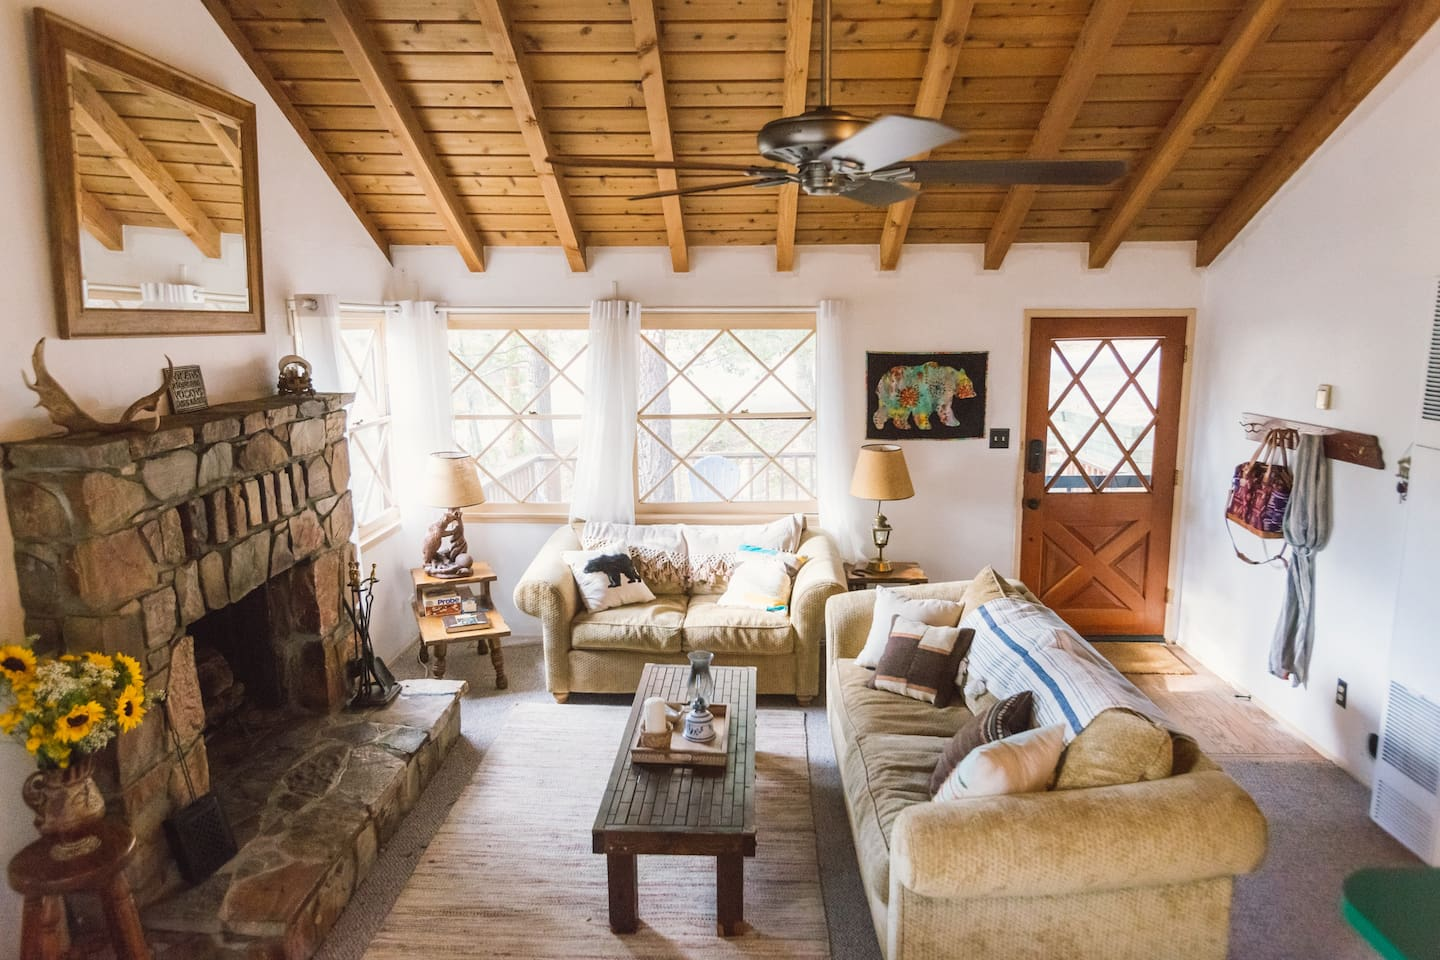 Super cozy living room with huge vaulted ceilings make this little cabin the perfect place to find a respite from city life.